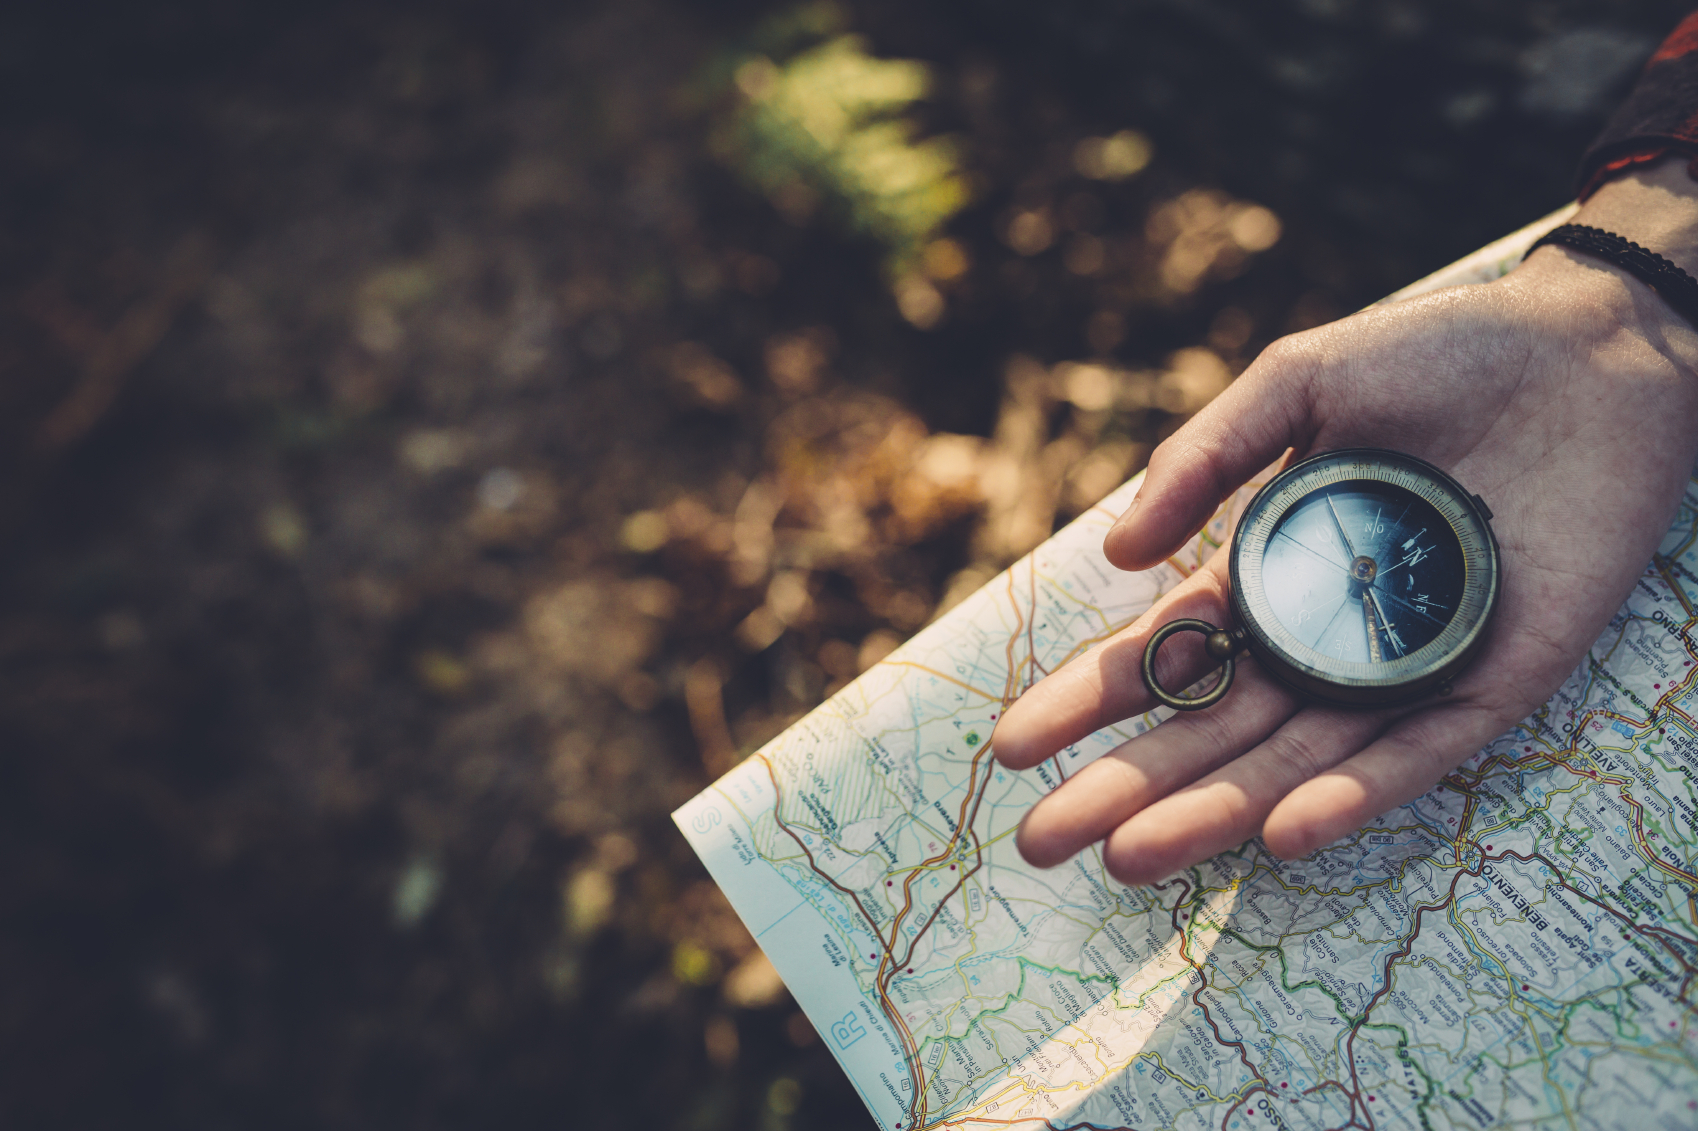 Hand holding a compass over a map